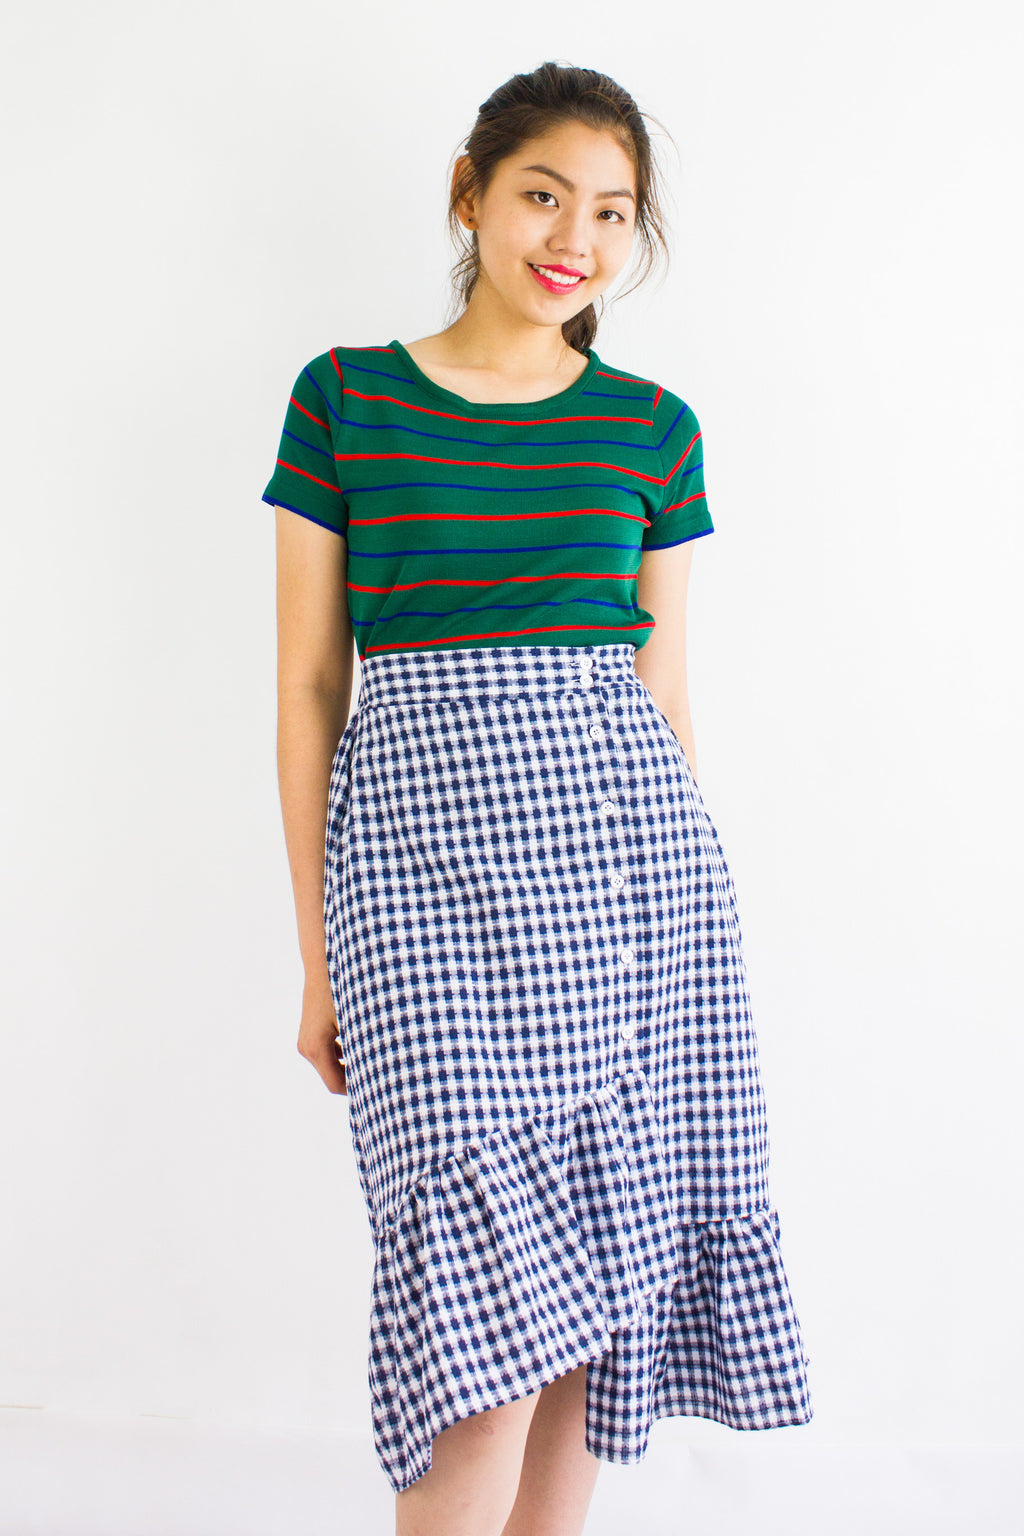 Gingham Go Ruffle Skirt in Navy Blue - BOTTOMS - Peep Boutique